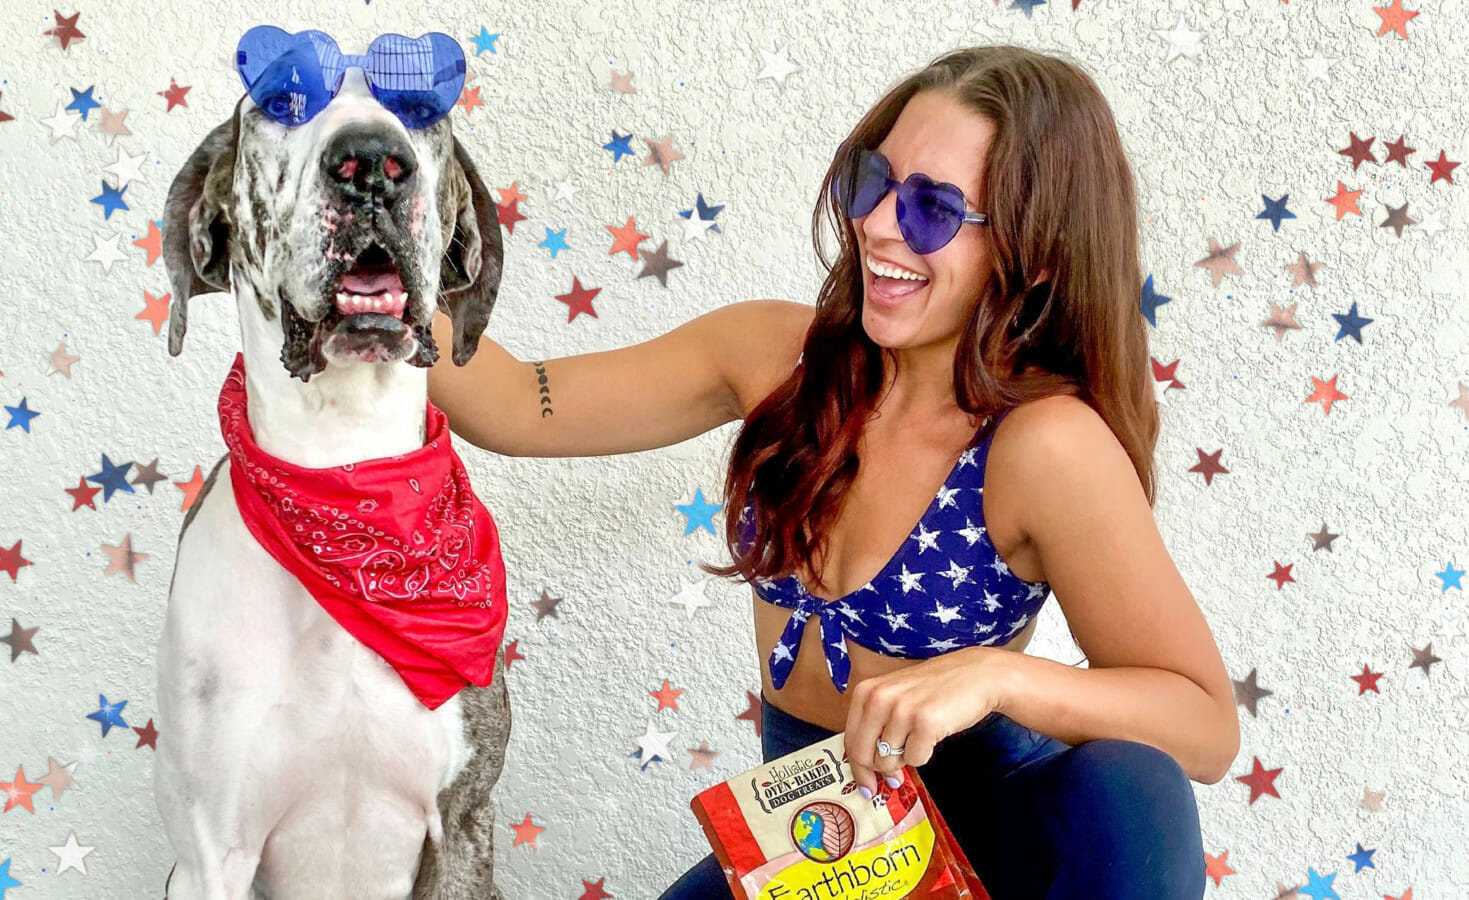 A woman and her dog wear 4th of July-themed sunglasses and bandanas